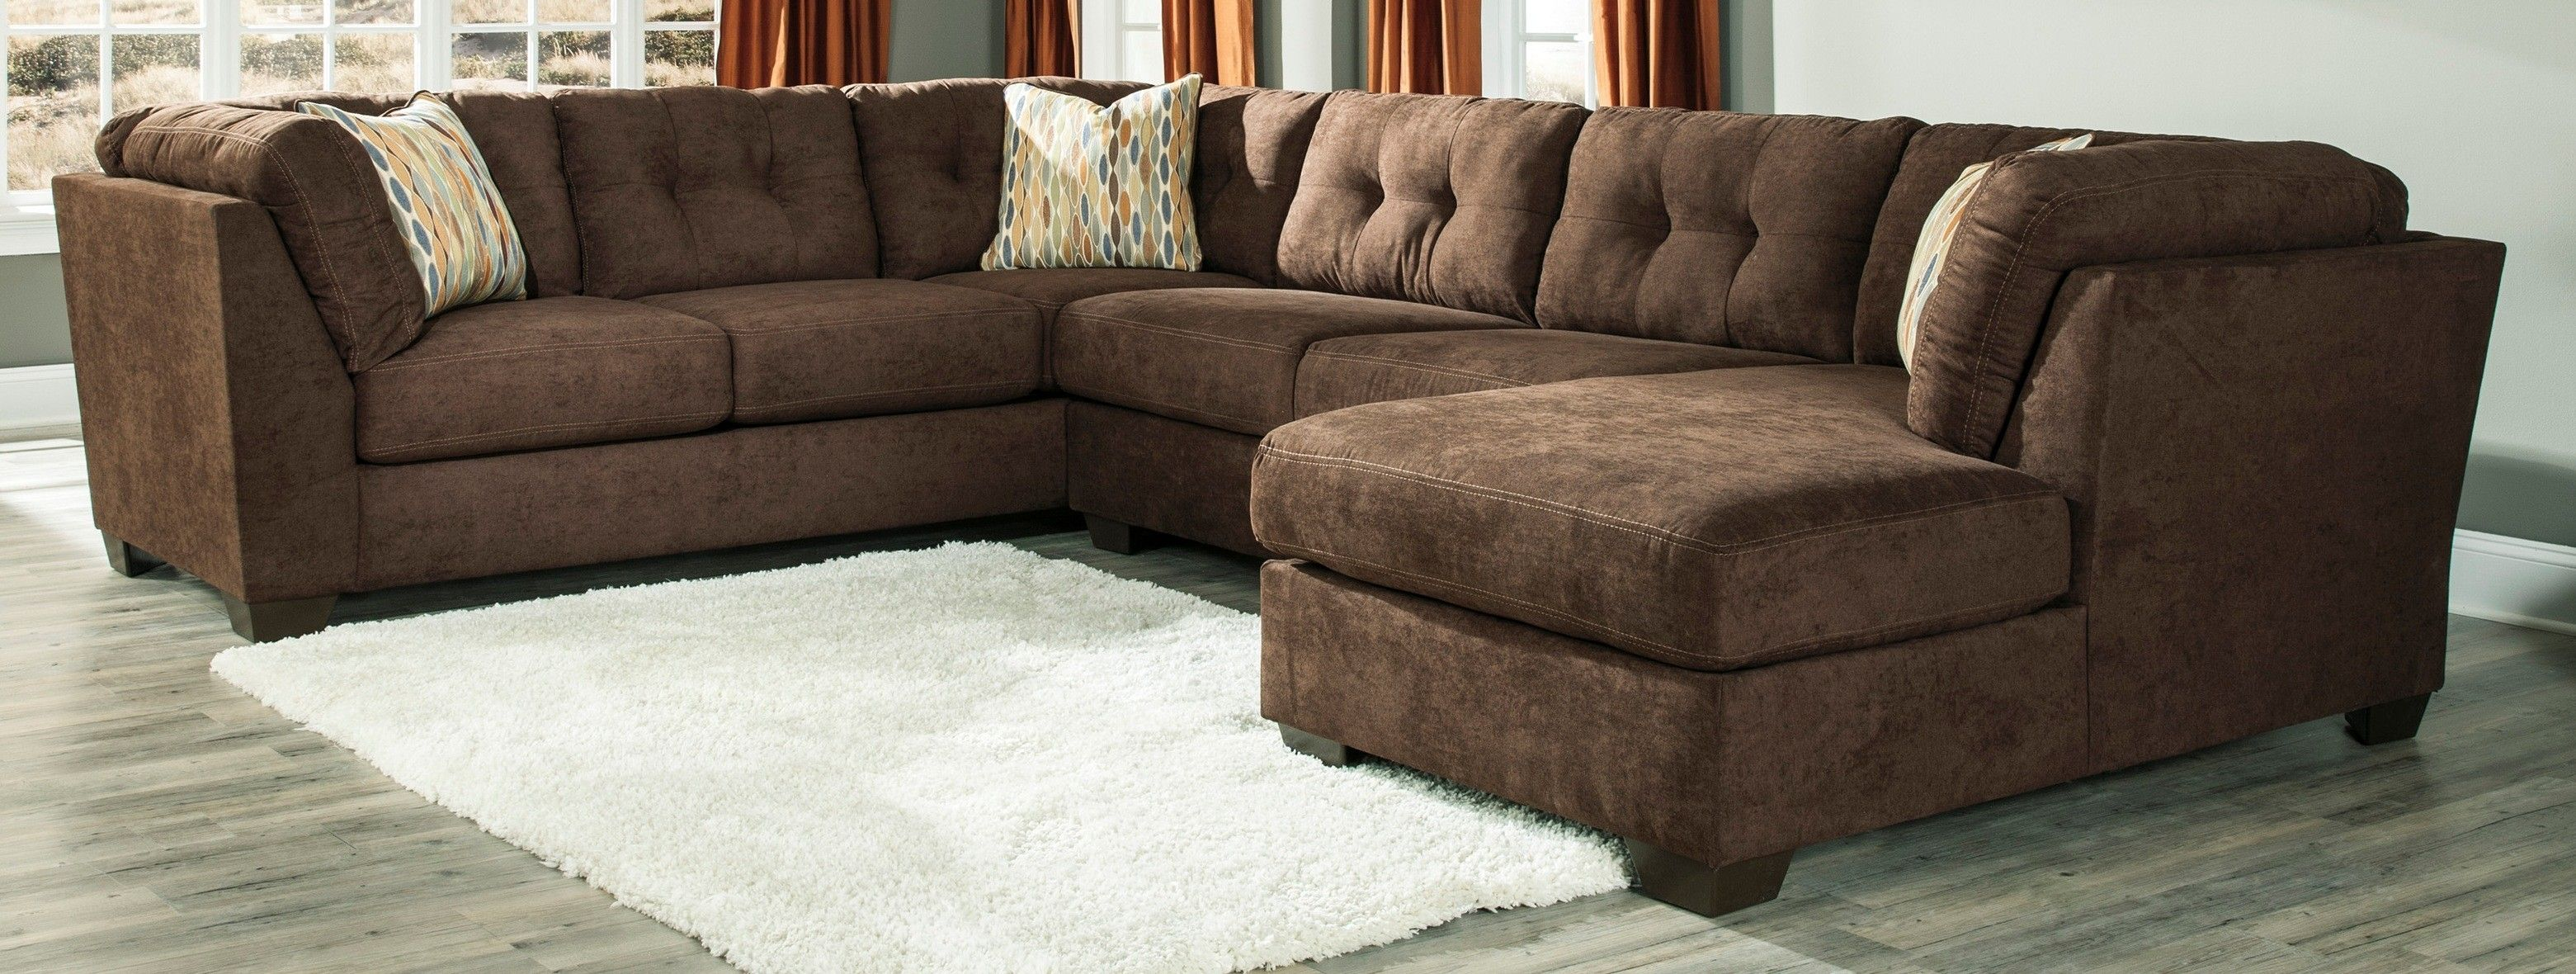 Buy Ashley Furniture 1970238 1970234 1970217 Delta City Chocolate Intended For Ashley Furniture Sectional Ashley Furniture Sectional Furniture Ashley Furniture